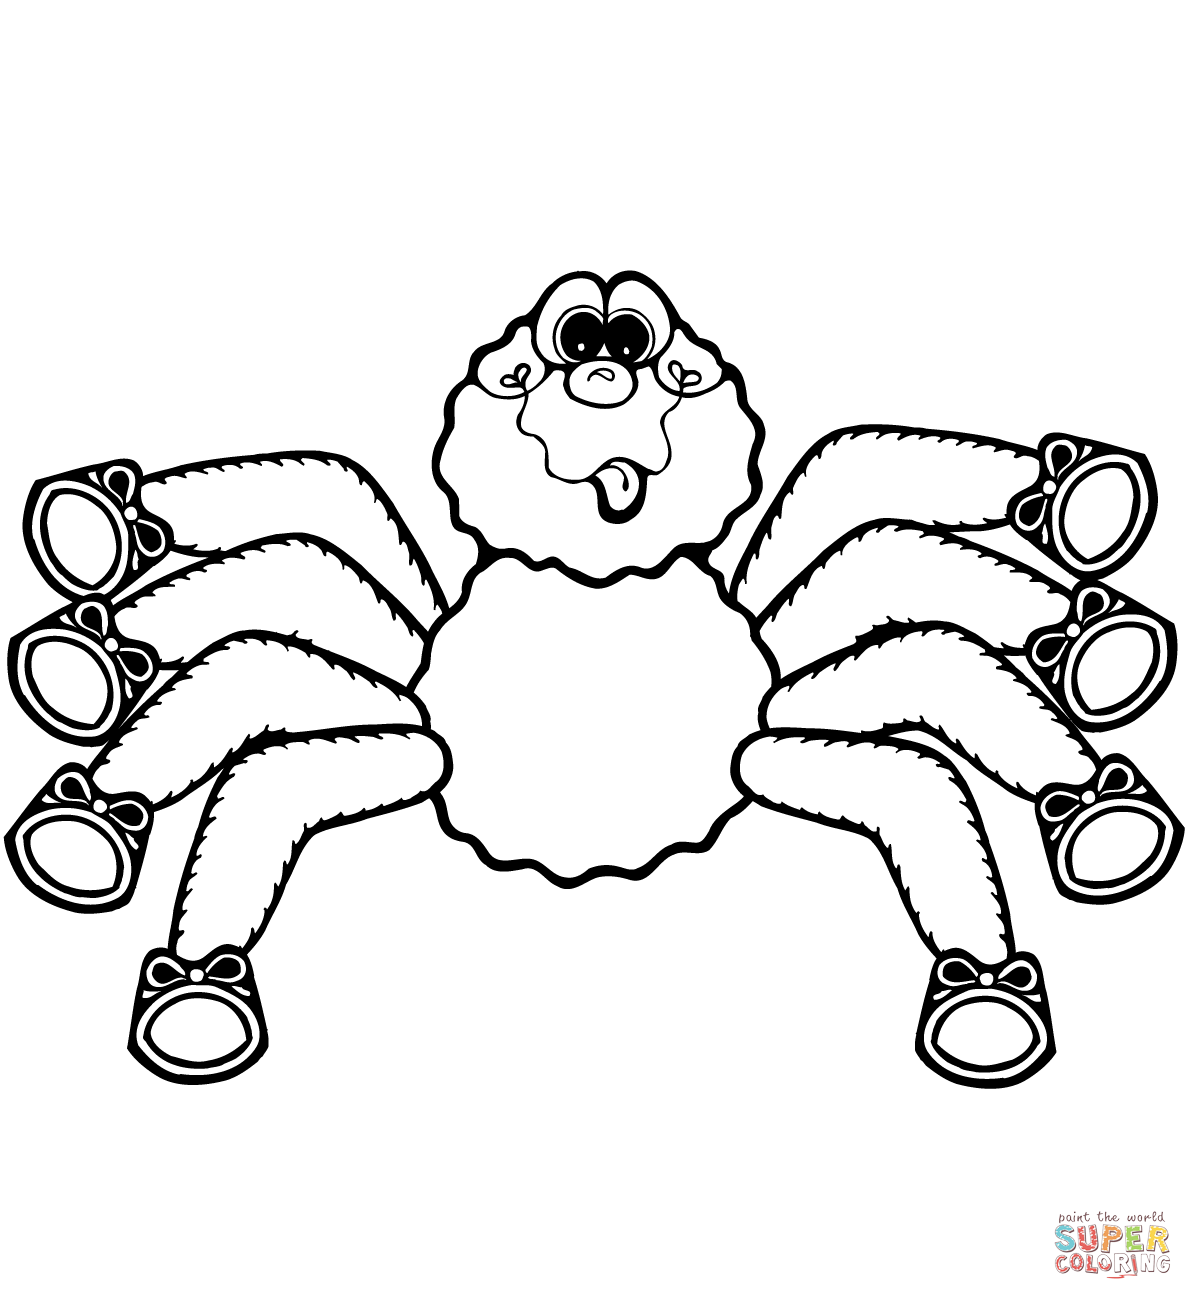 spiders coloring pages free coloring pages